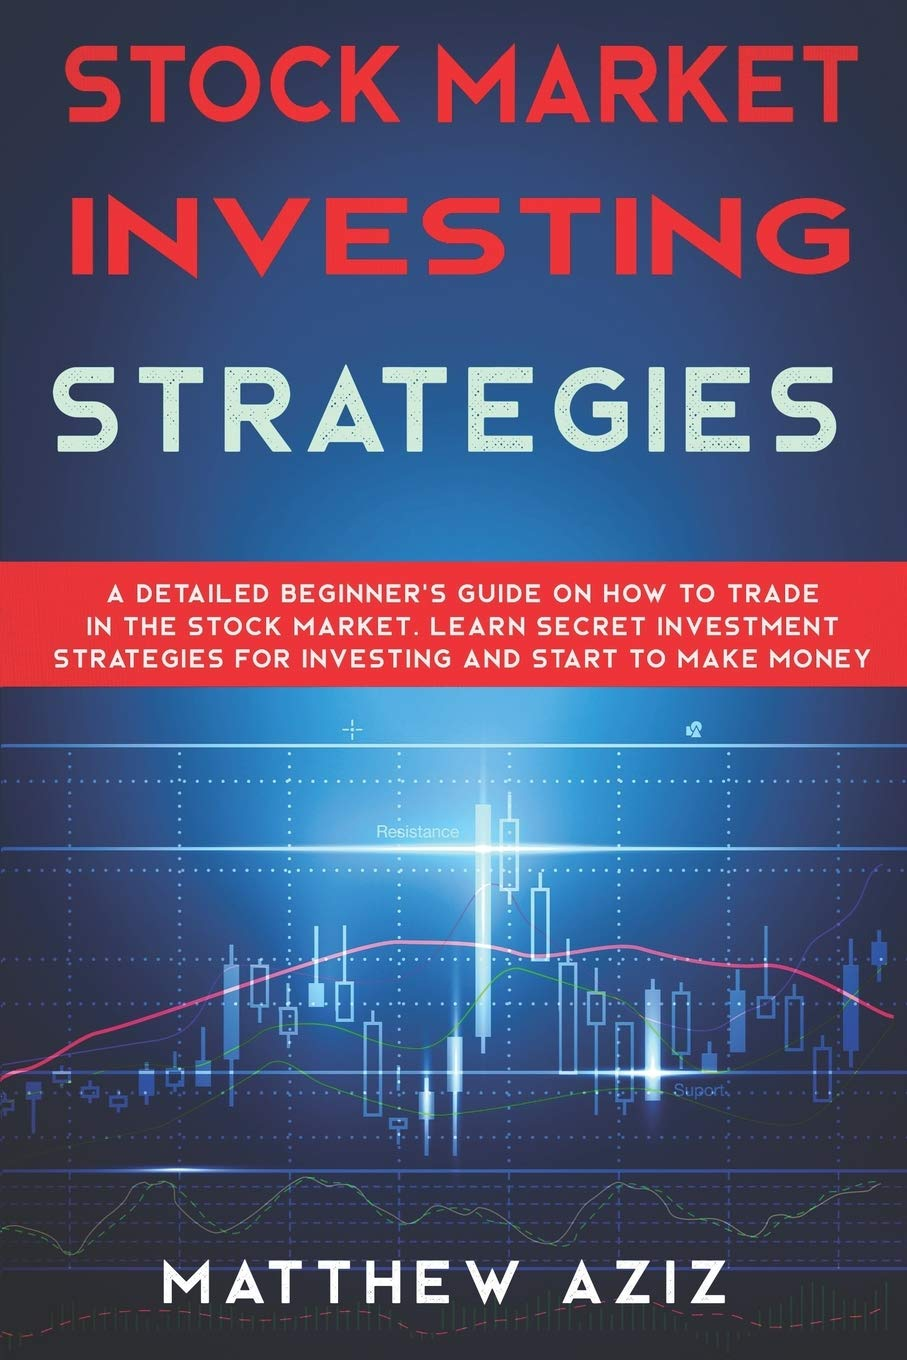 Stock Market Investing Strategies: A Detailed Beginner's Guide on How to  Trade in the Stock Market. Learn Secret Investment Strategies for Investing  and Start to Make Money: Amazon.de: Aziz, Matthew: Fremdsprachige Bücher